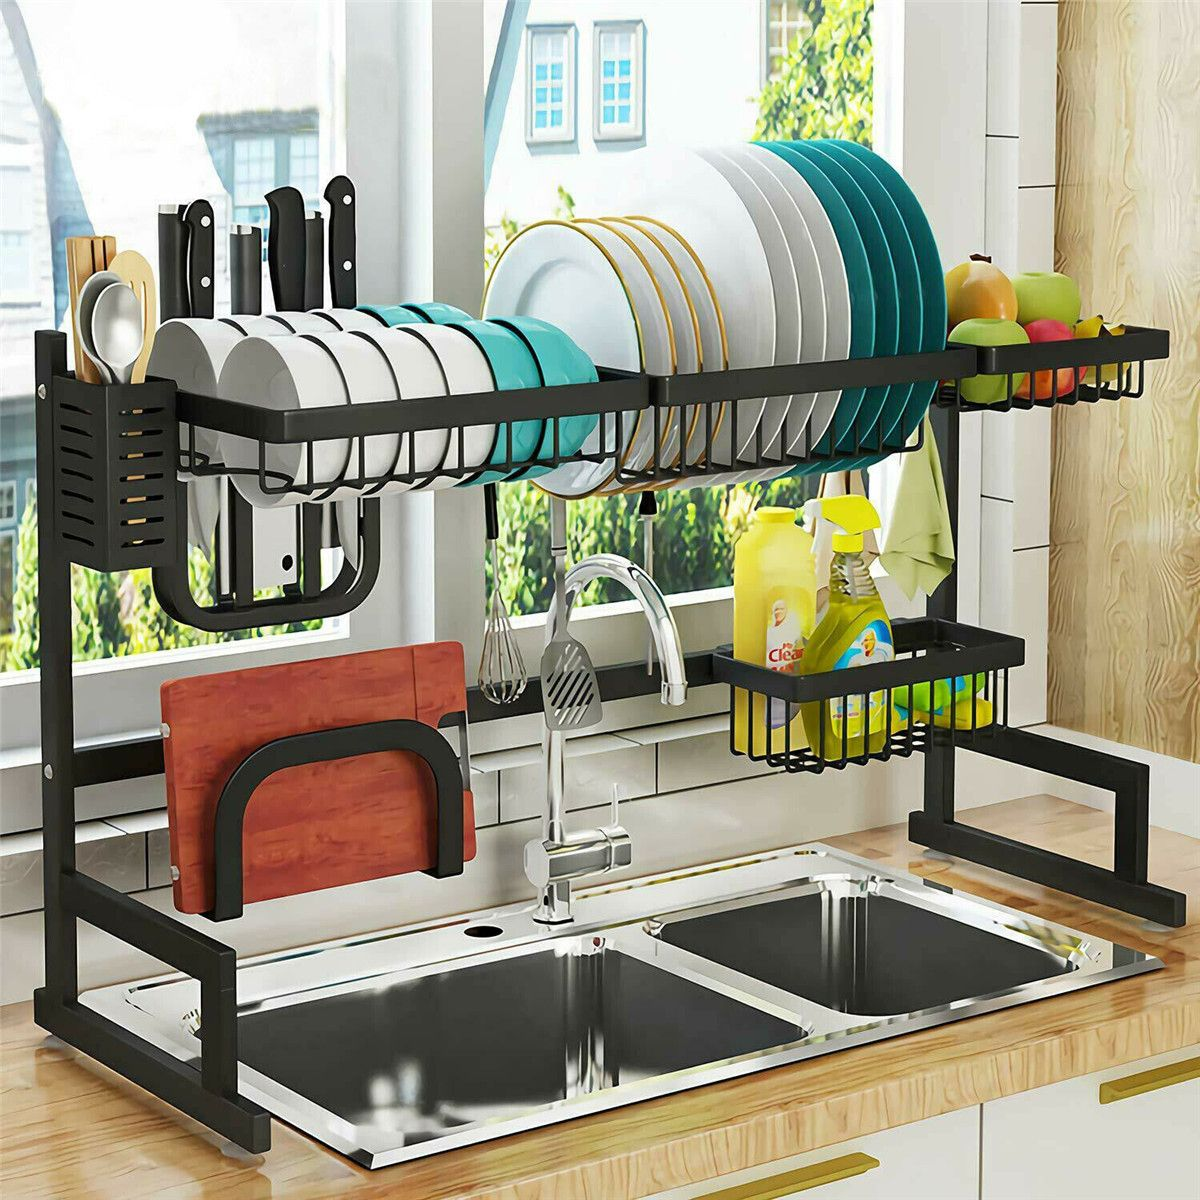 Over Sink Shelf Dish Cutlery Drying Drainer Utensils Holder Washing Organizer Kitchen Space Saverstainless Steel Dish Drying Rack Over Sink Drainer Shelf Storag In 2020 Dish Rack Drying Sink Dish Rack